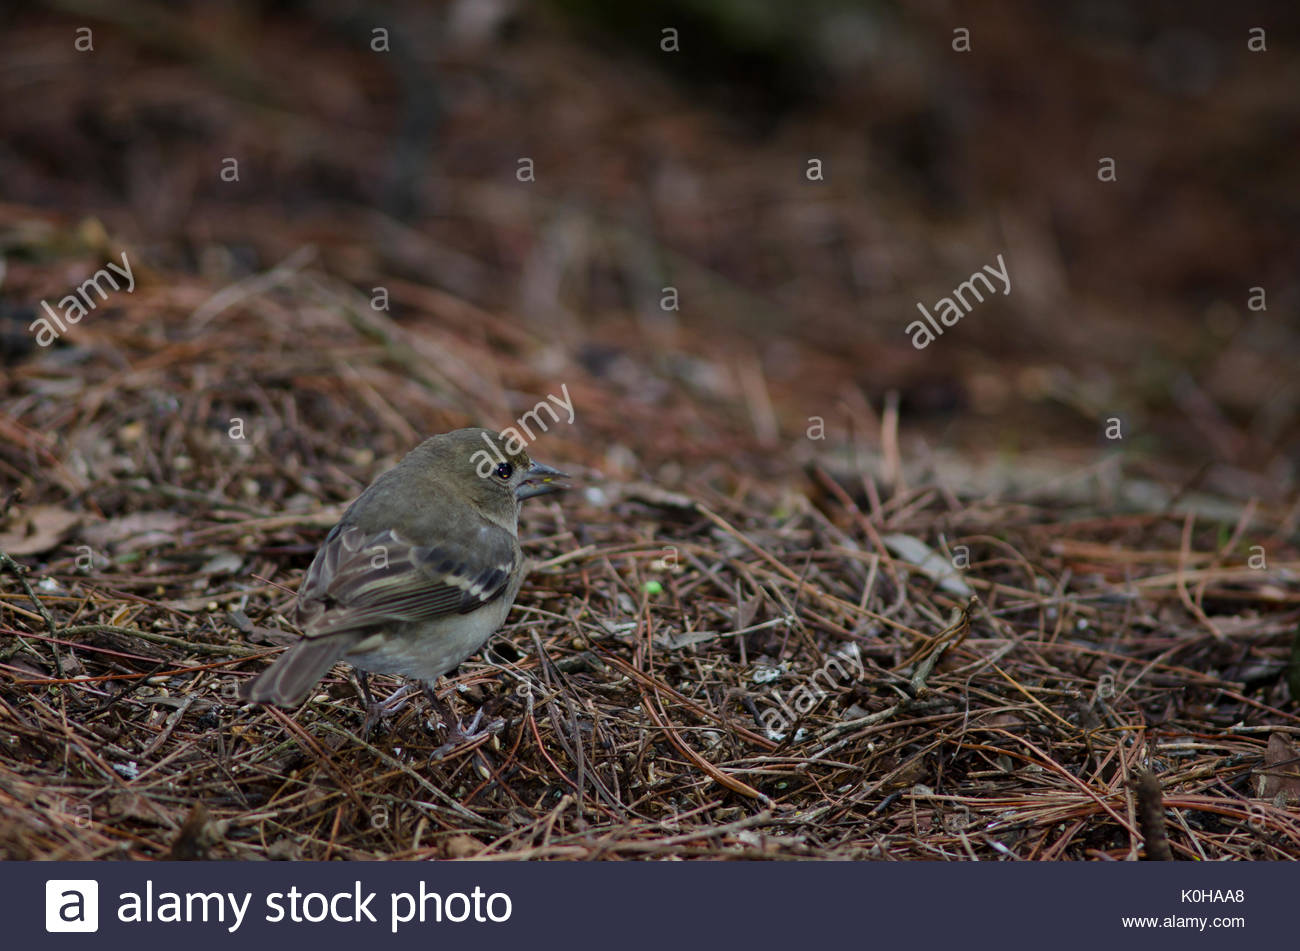 Gran Canaria blue chaffinch (Fringilla polatzeki). Female. The Nublo Rural Park. Tejeda. Gran Canaria. Canary Islands. Spain. - Stock Image